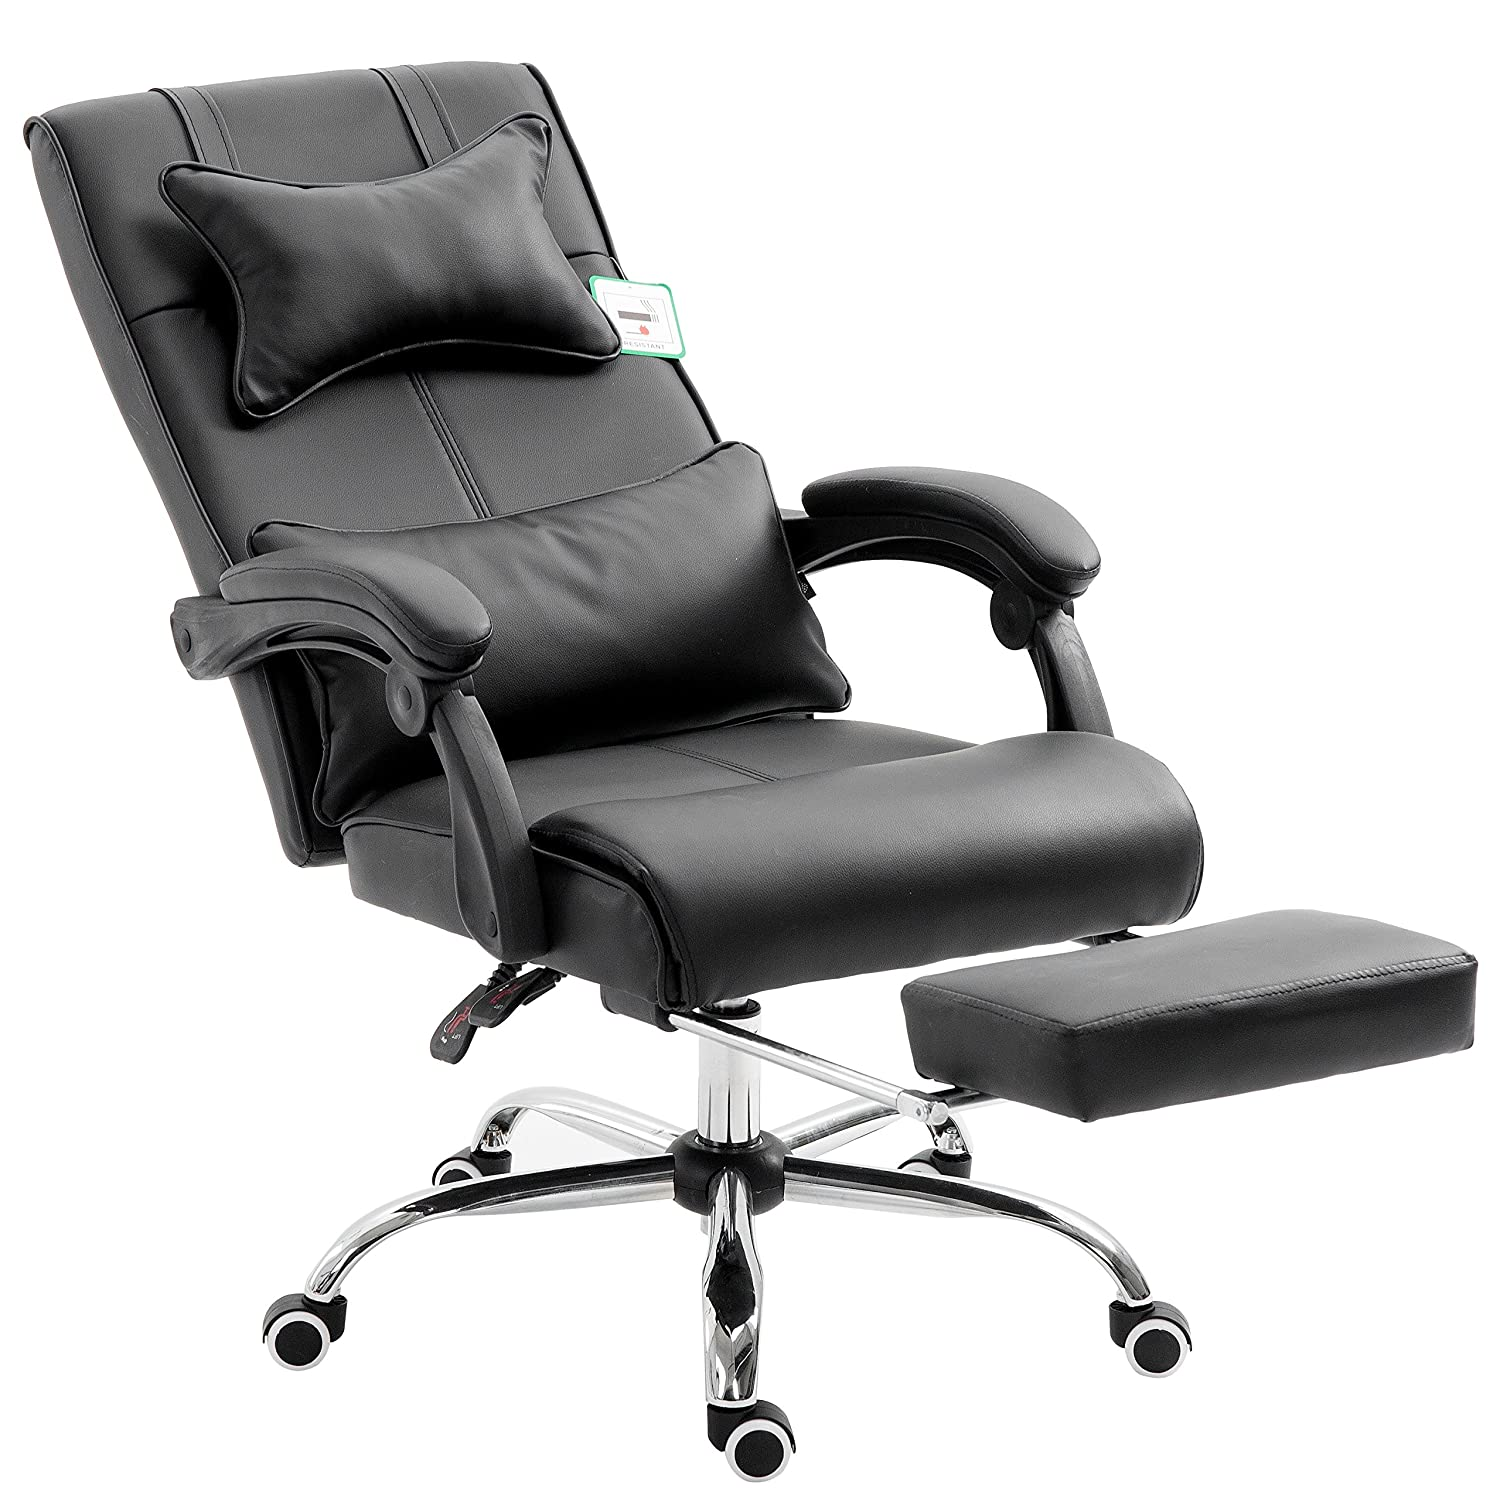 Style 2 Cherry Tree Furniture Extra Padded High Back Reclining Faux Leather Relaxing Swivel Executive Chair With Footrest